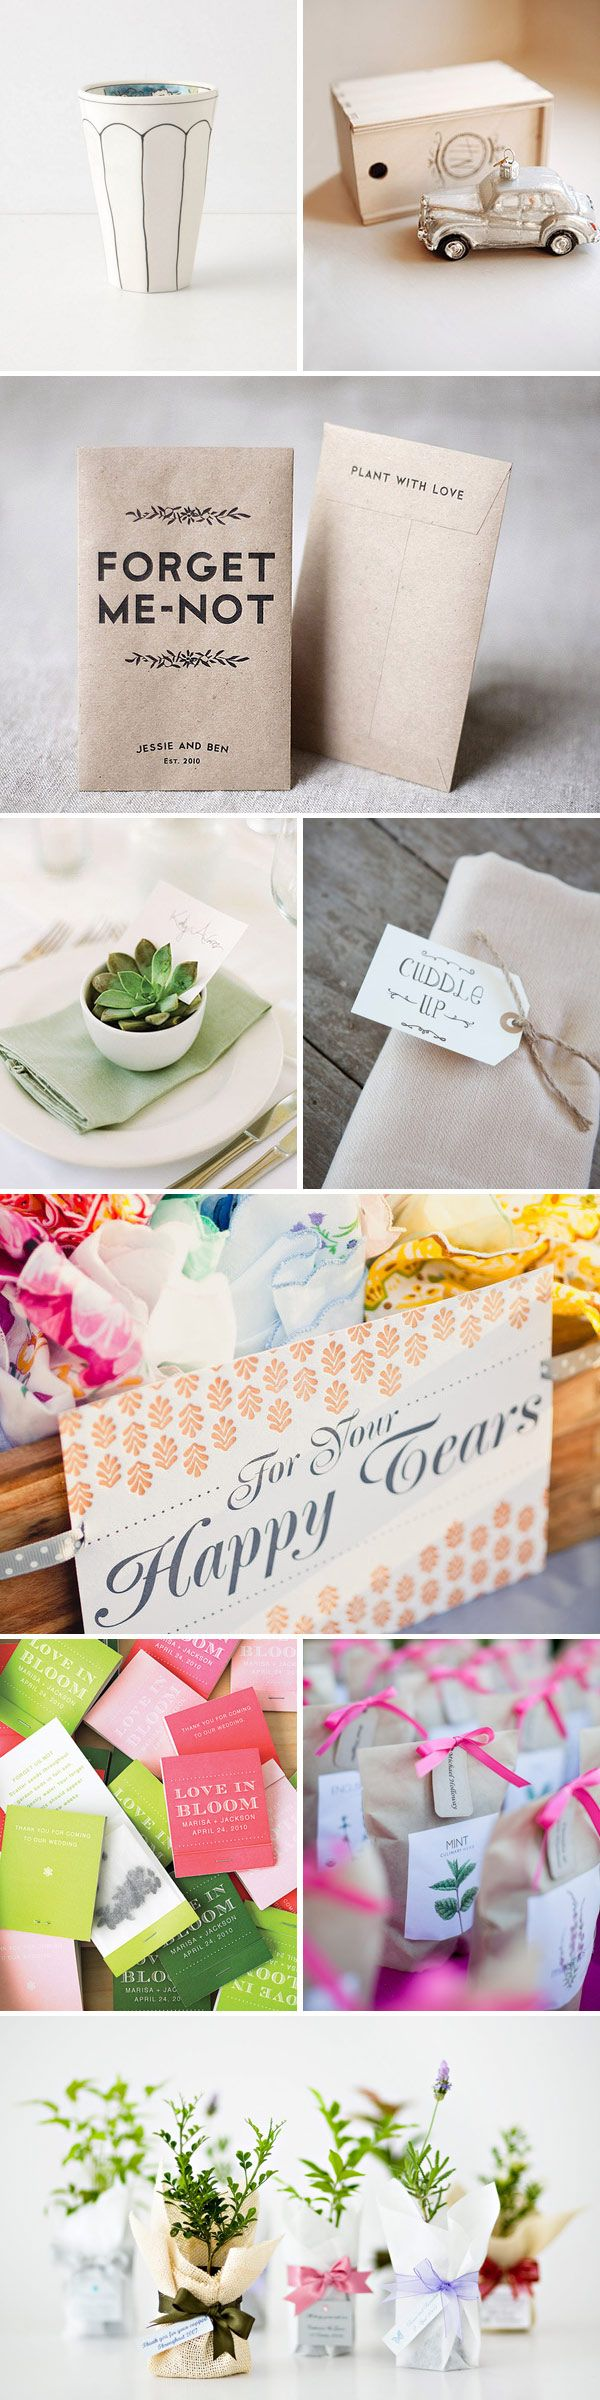 Wedding Favours for a Vintage Theme